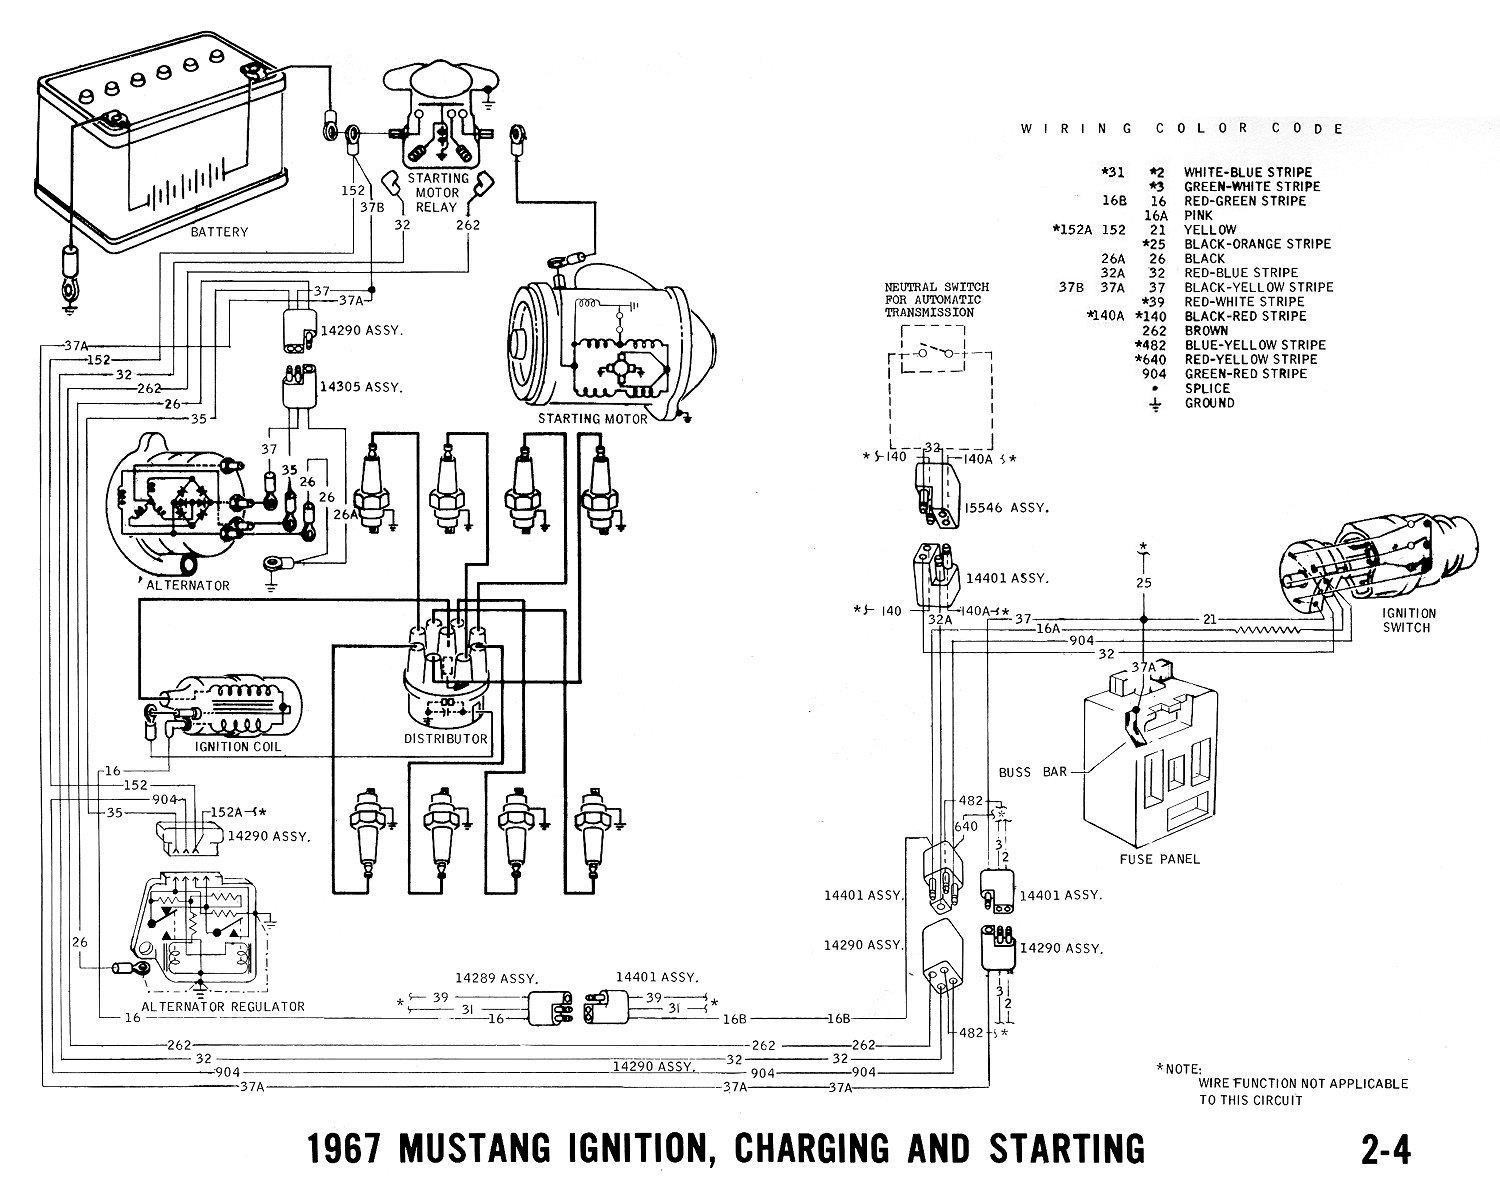 68 ford mustang wiring diagram tractor 2000 voltage wiring diagram